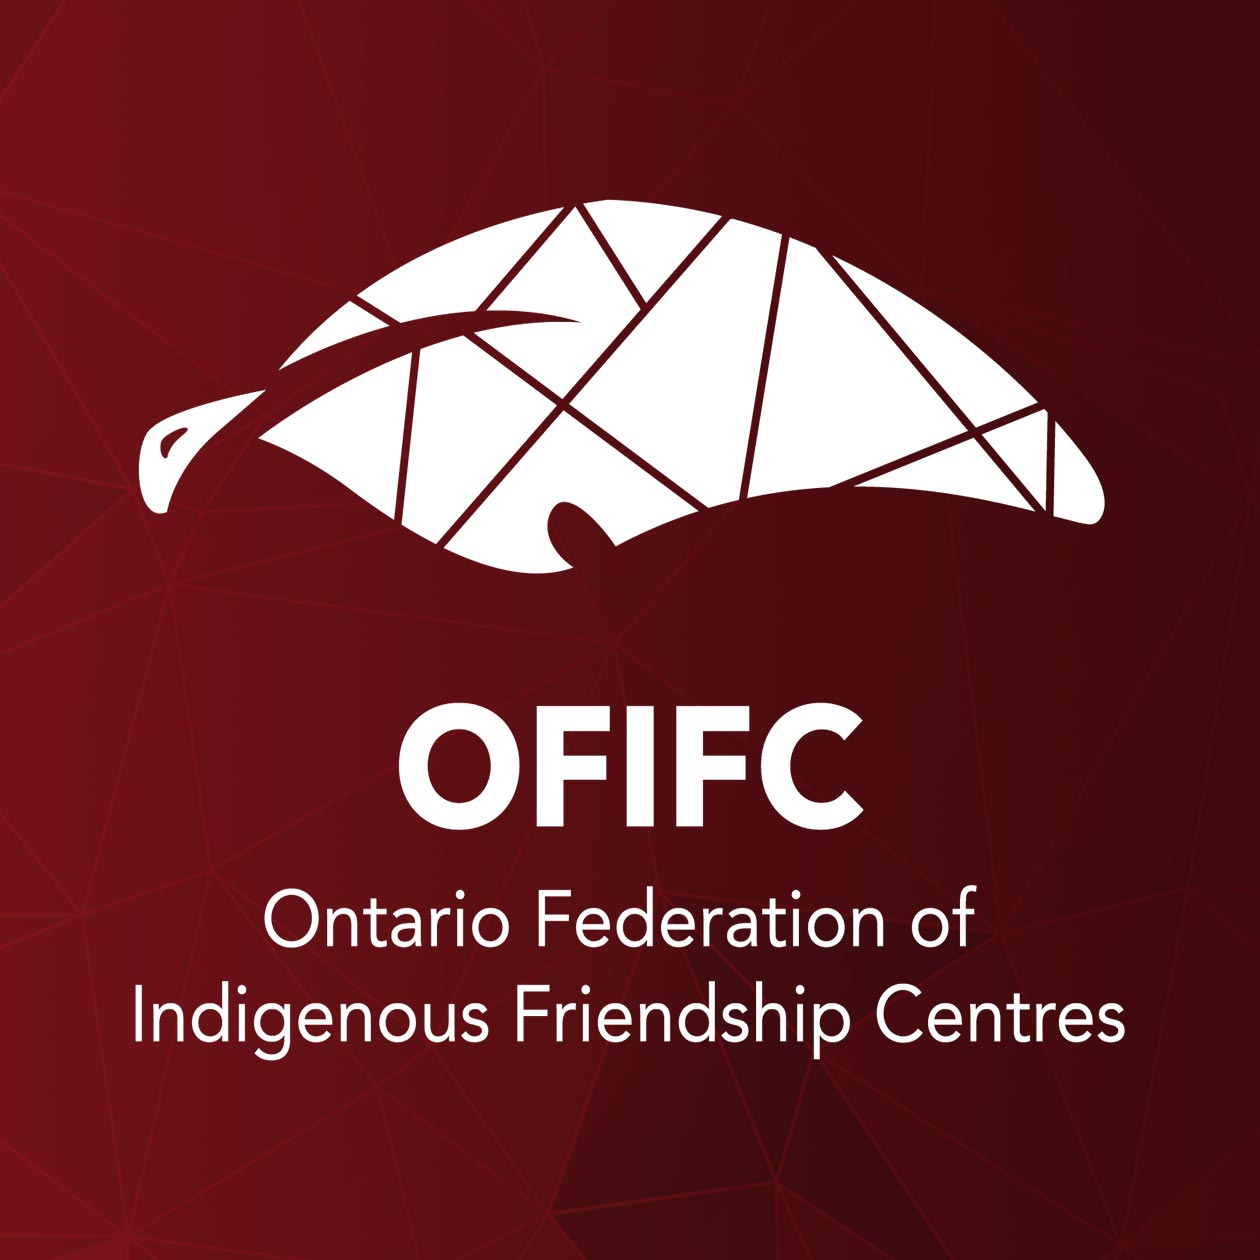 OFIFC Logo on red background